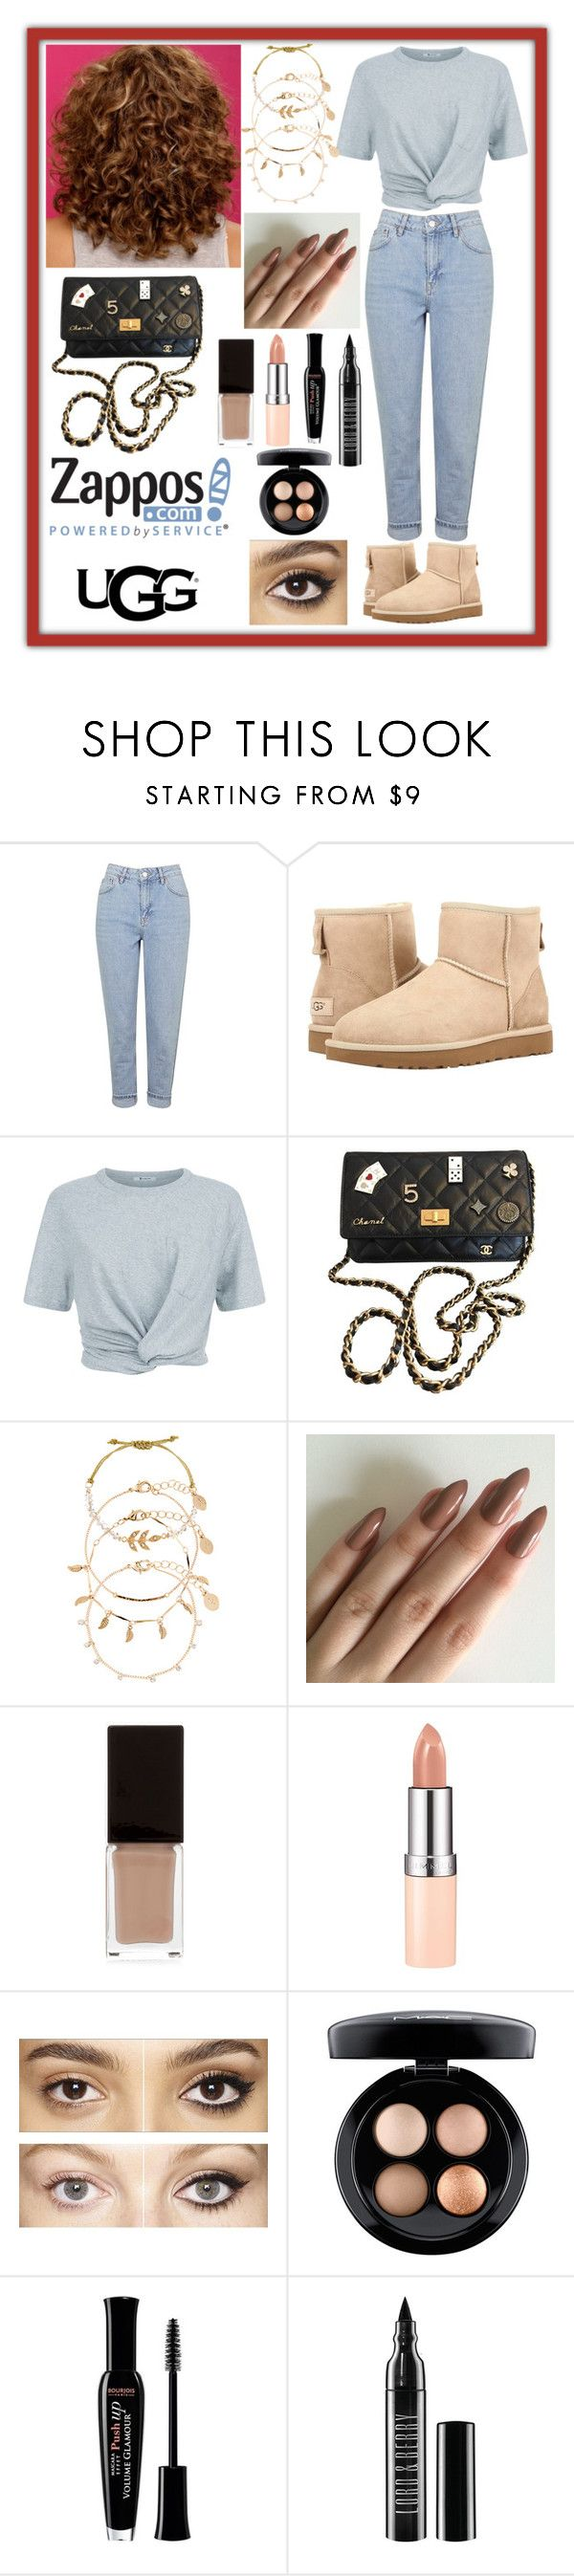 """""""The Icon Perfected: UGG Classic II Contest Entry"""" by haybeebaby ❤ liked on Polyvore featuring Topshop, UGG Australia, T By Alexander Wang, Chanel, Accessorize, Serge Lutens, Rimmel, Charlotte Tilbury, MAC Cosmetics and Bourjois"""